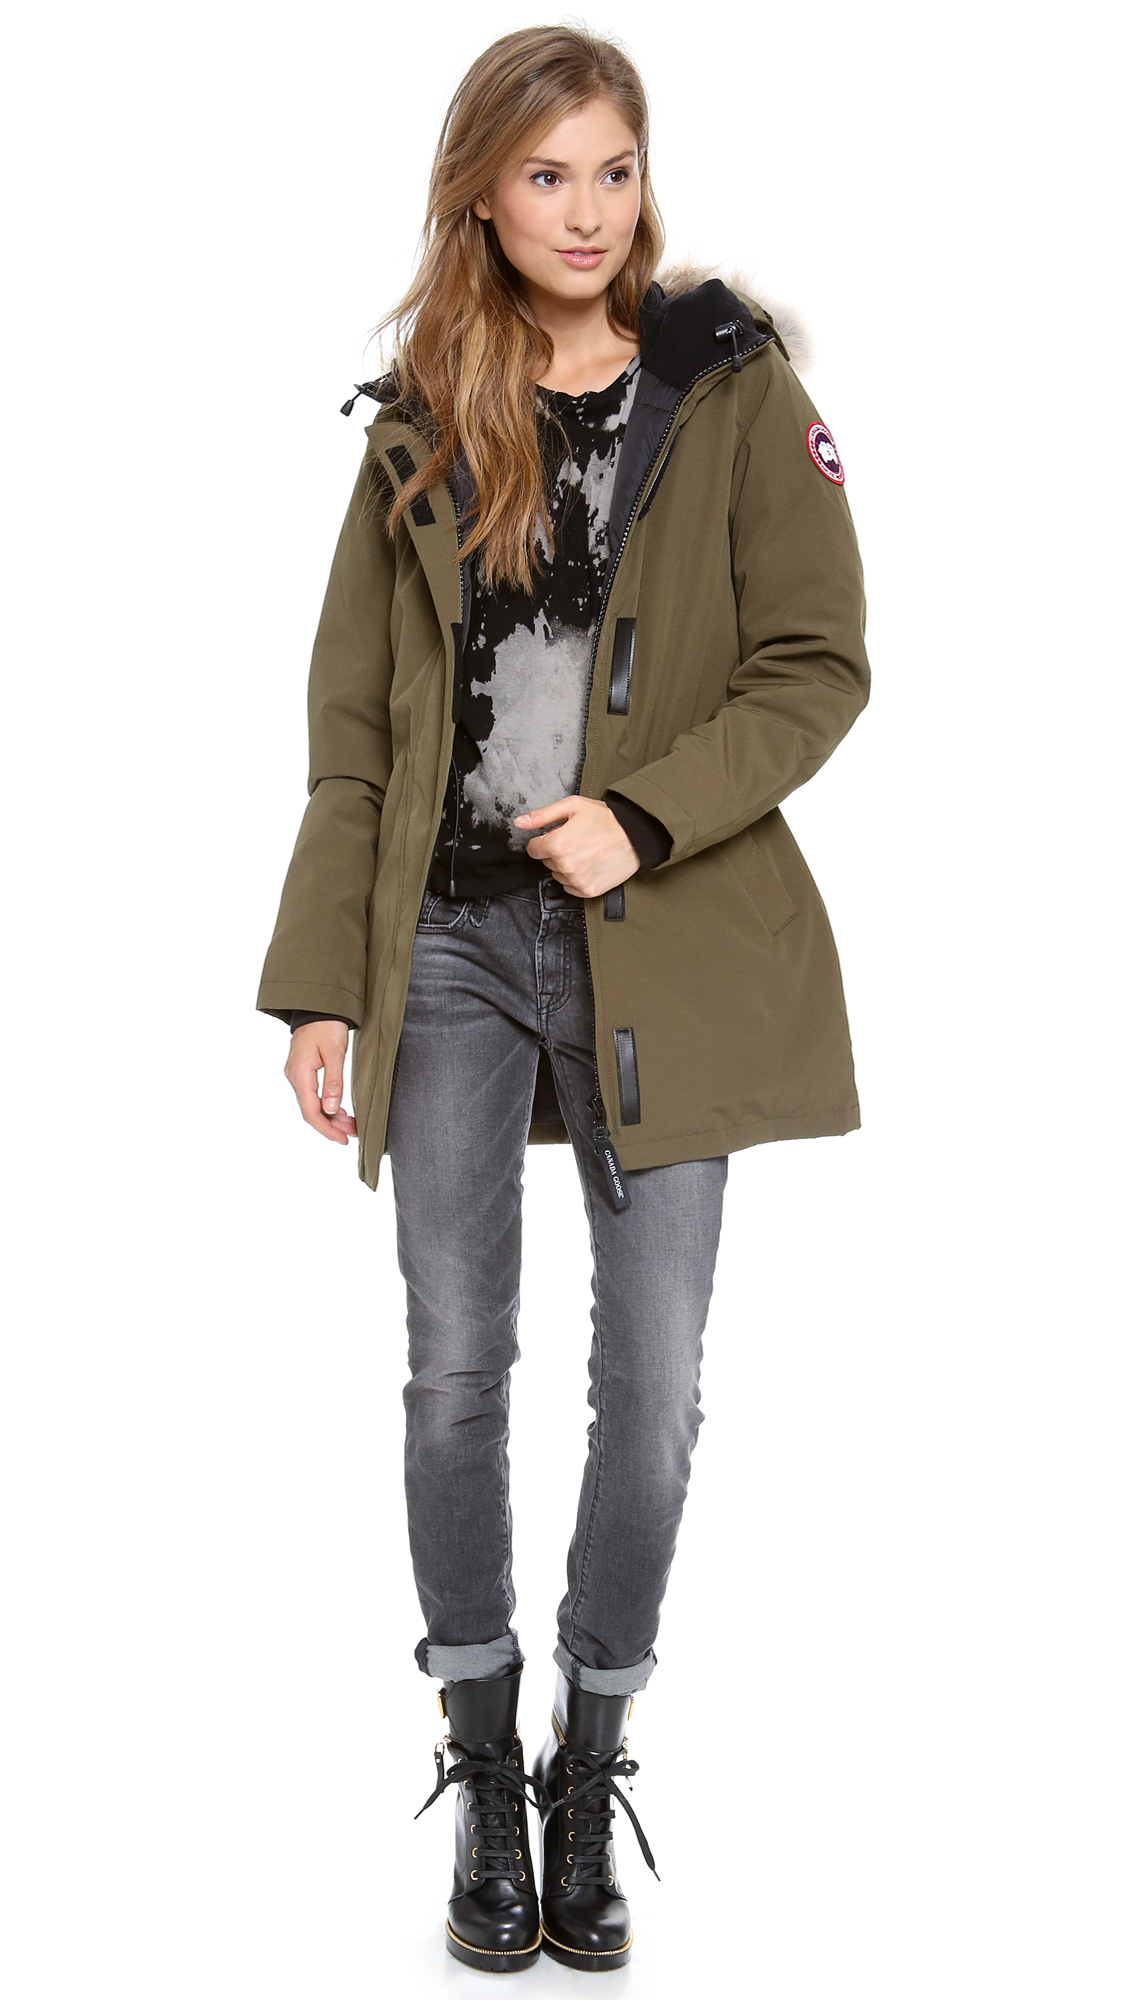 Canada Goose Victoria Parka in Green (Military Green)